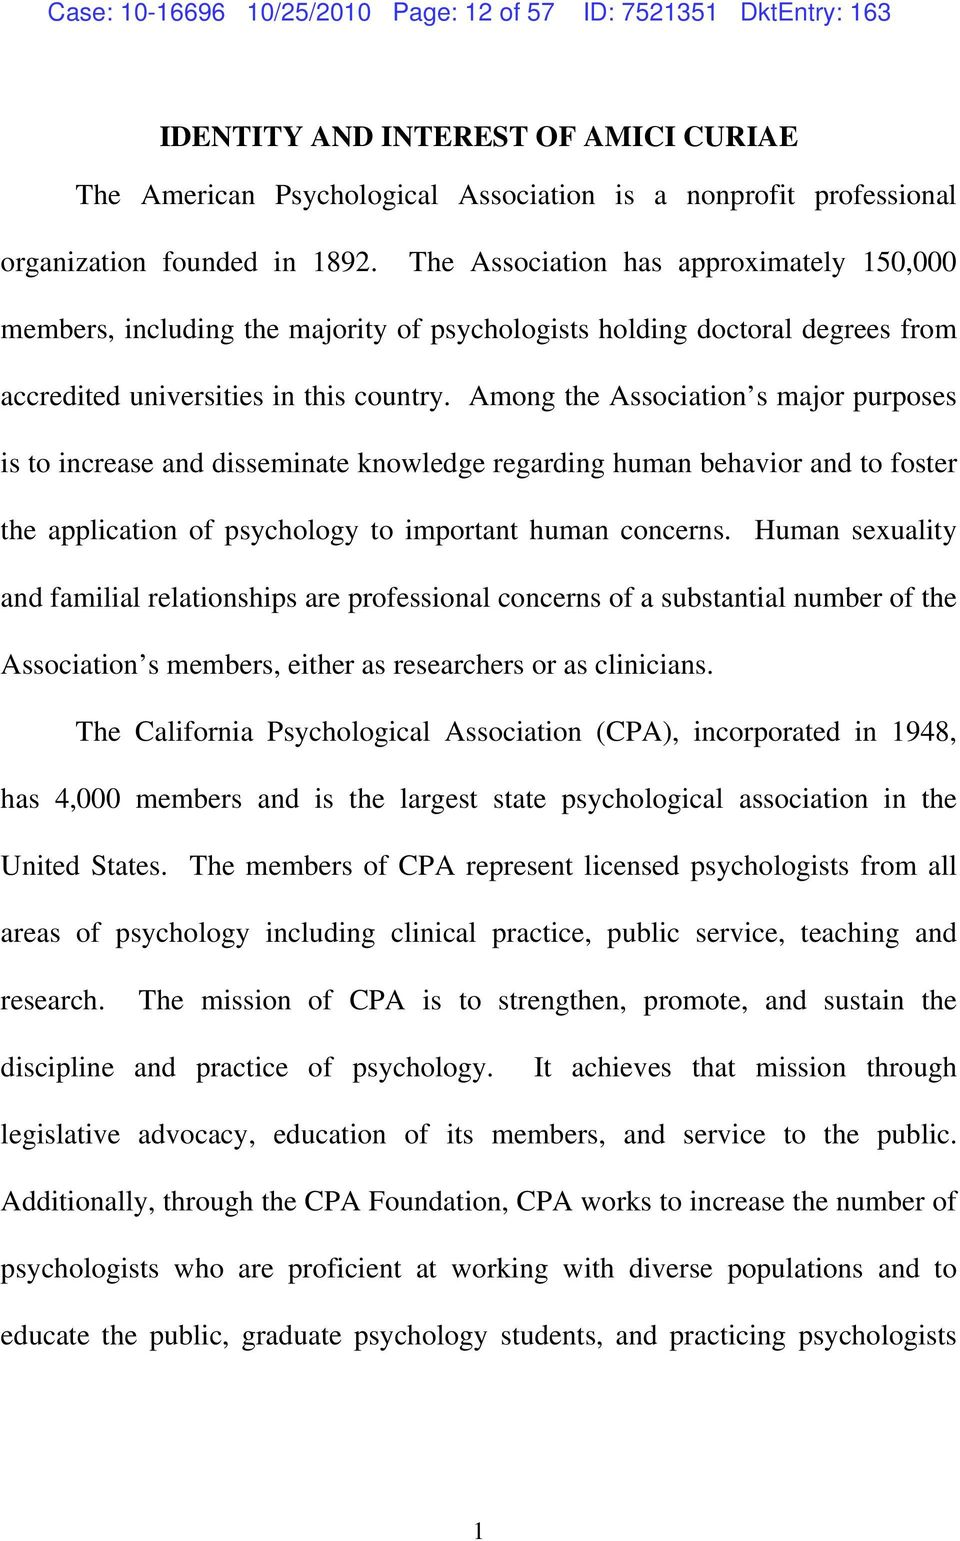 Among the Association s major purposes is to increase and disseminate knowledge regarding human behavior and to foster the application of psychology to important human concerns.